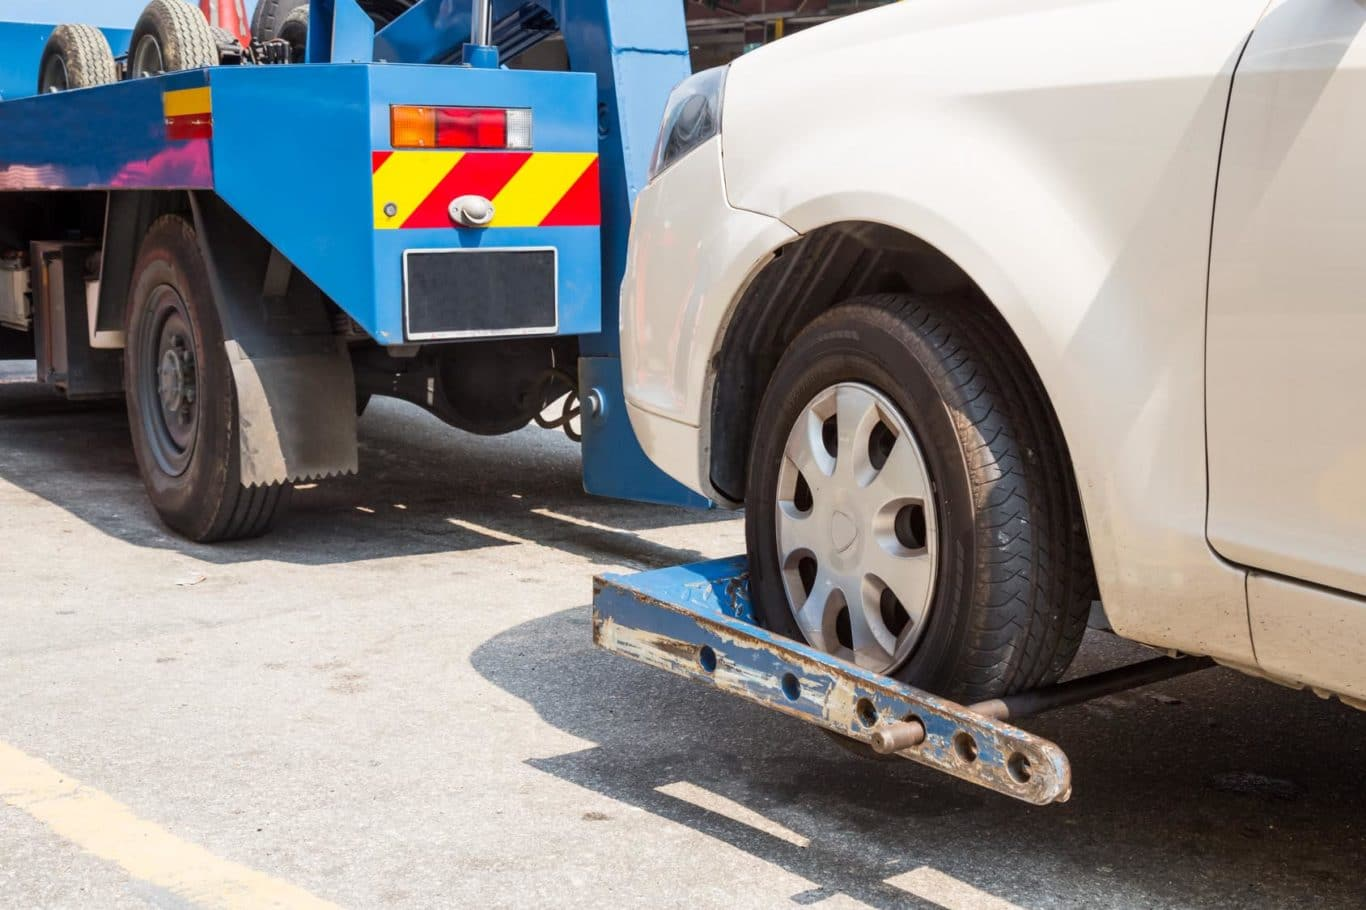 Stepaside expert Roadside Assistance services